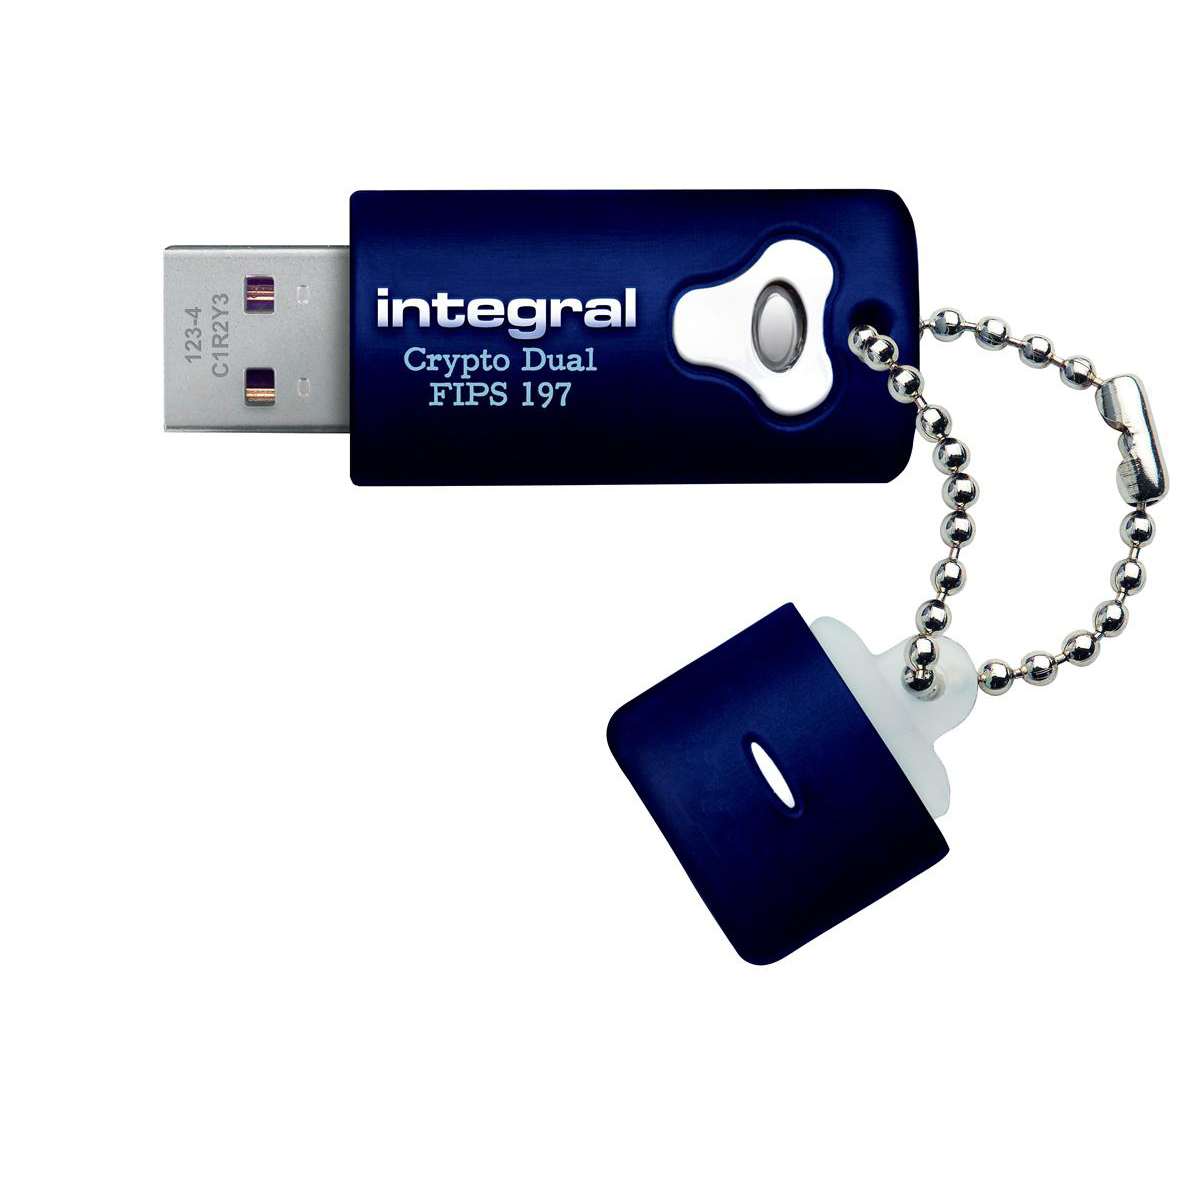 Integral Crypto Dual Flash Drive USB 2.0 FIPS 197 256-bit Encryption 8GB Ref INFD8GCRYPTODL197